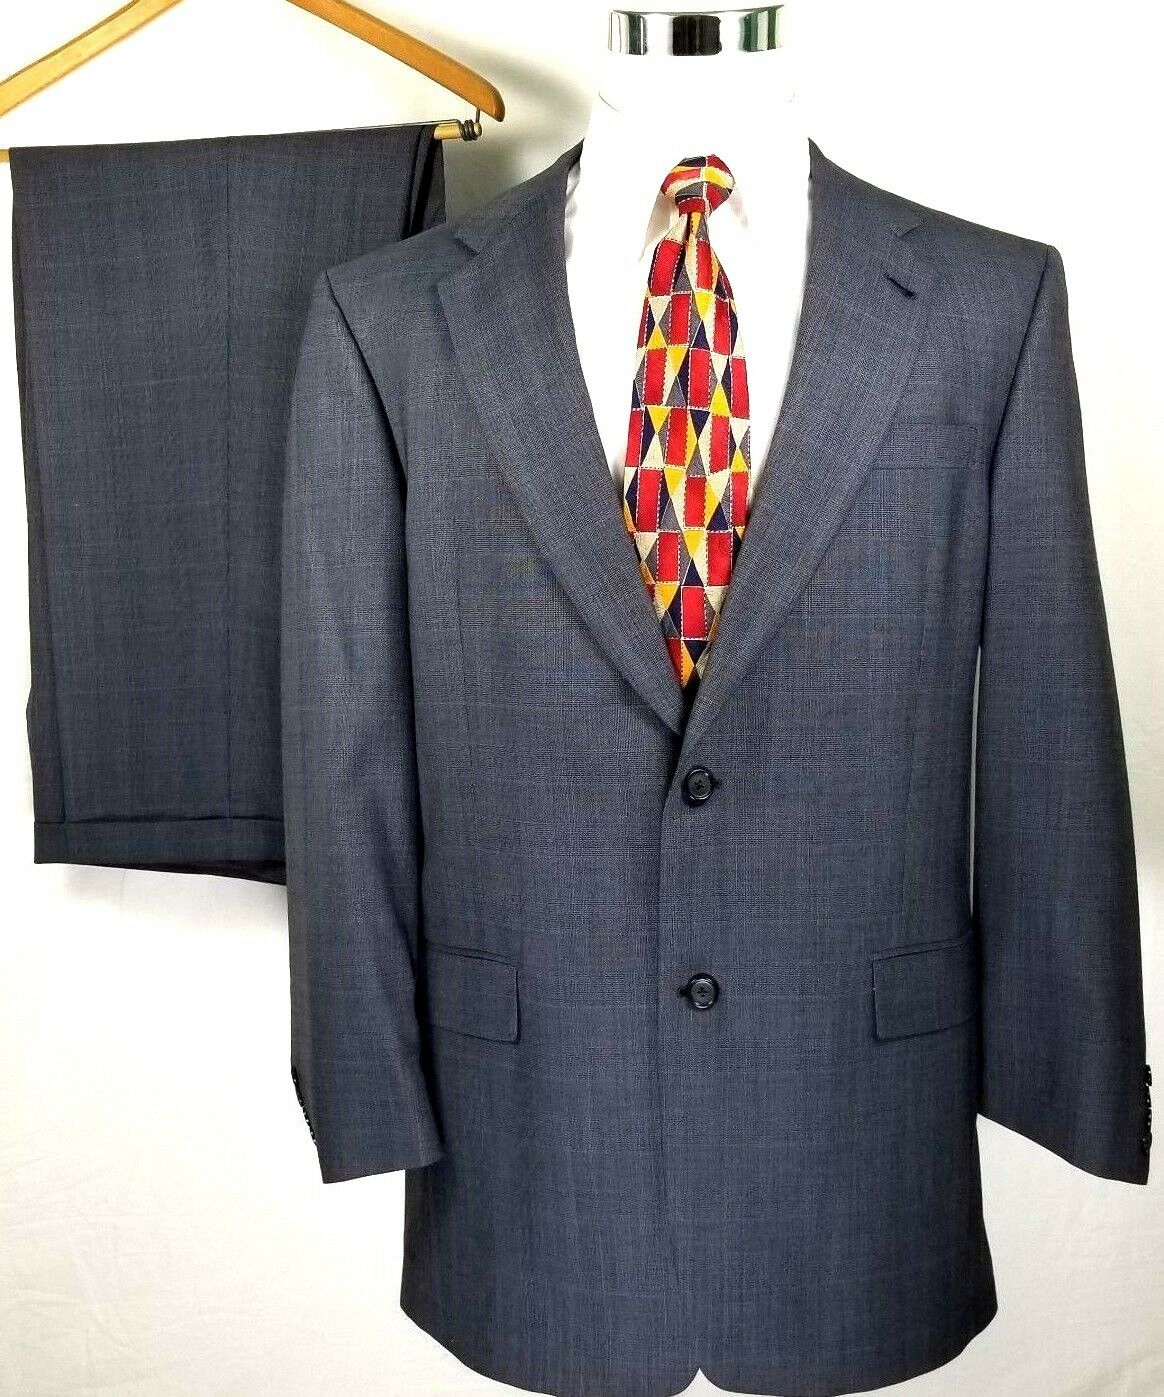 Hart Schaffner Marx Mens Suit Size 42 Long 38 x 29 Steel bluee Windowpane Wool